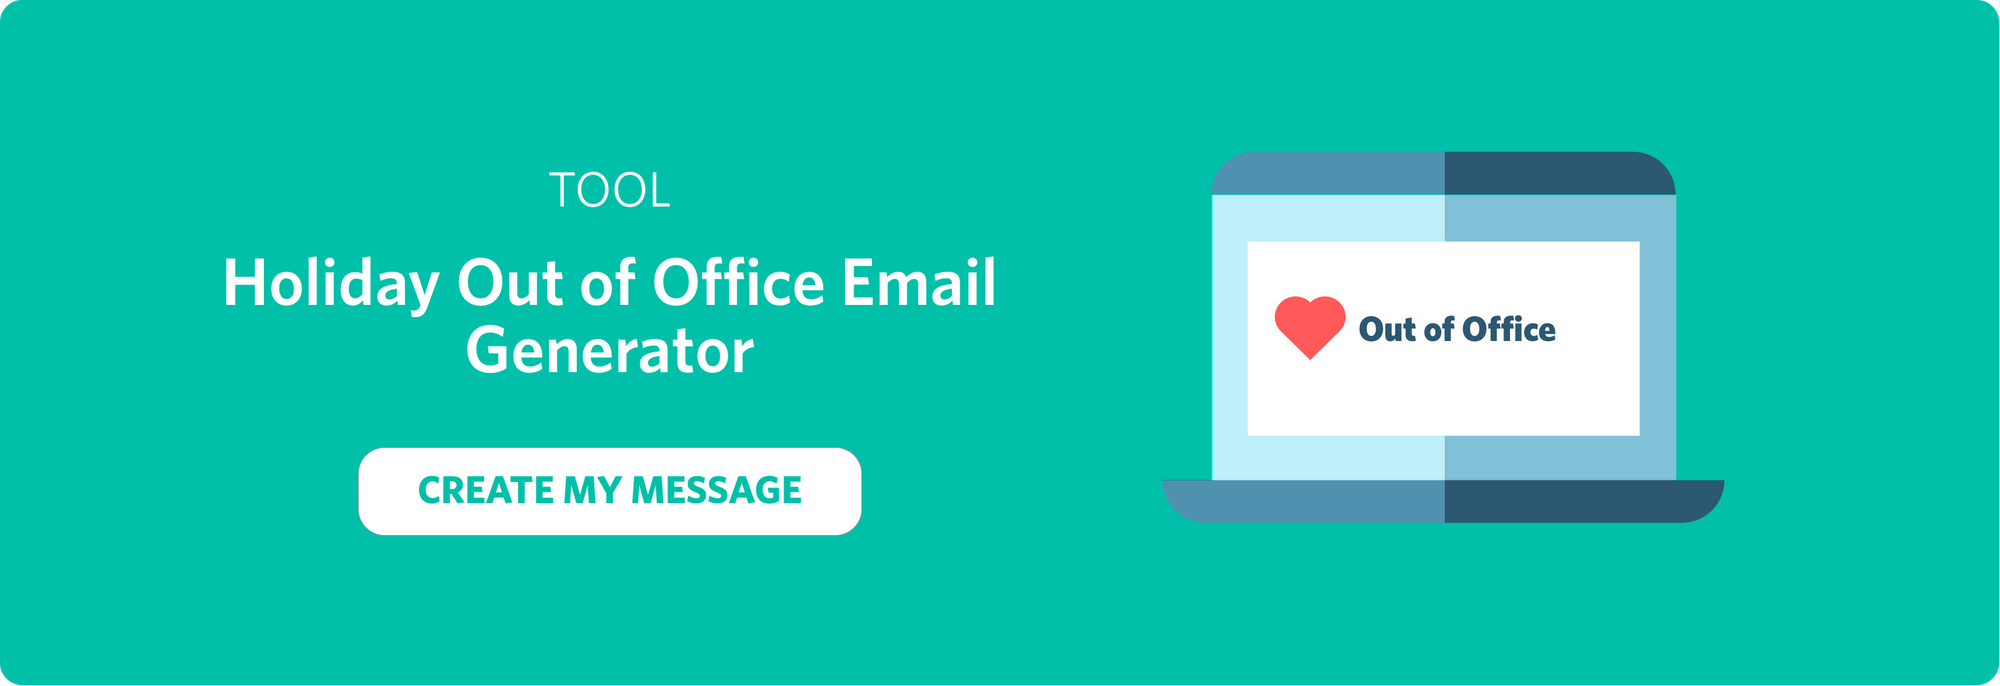 out-of-office-email-generator-cta